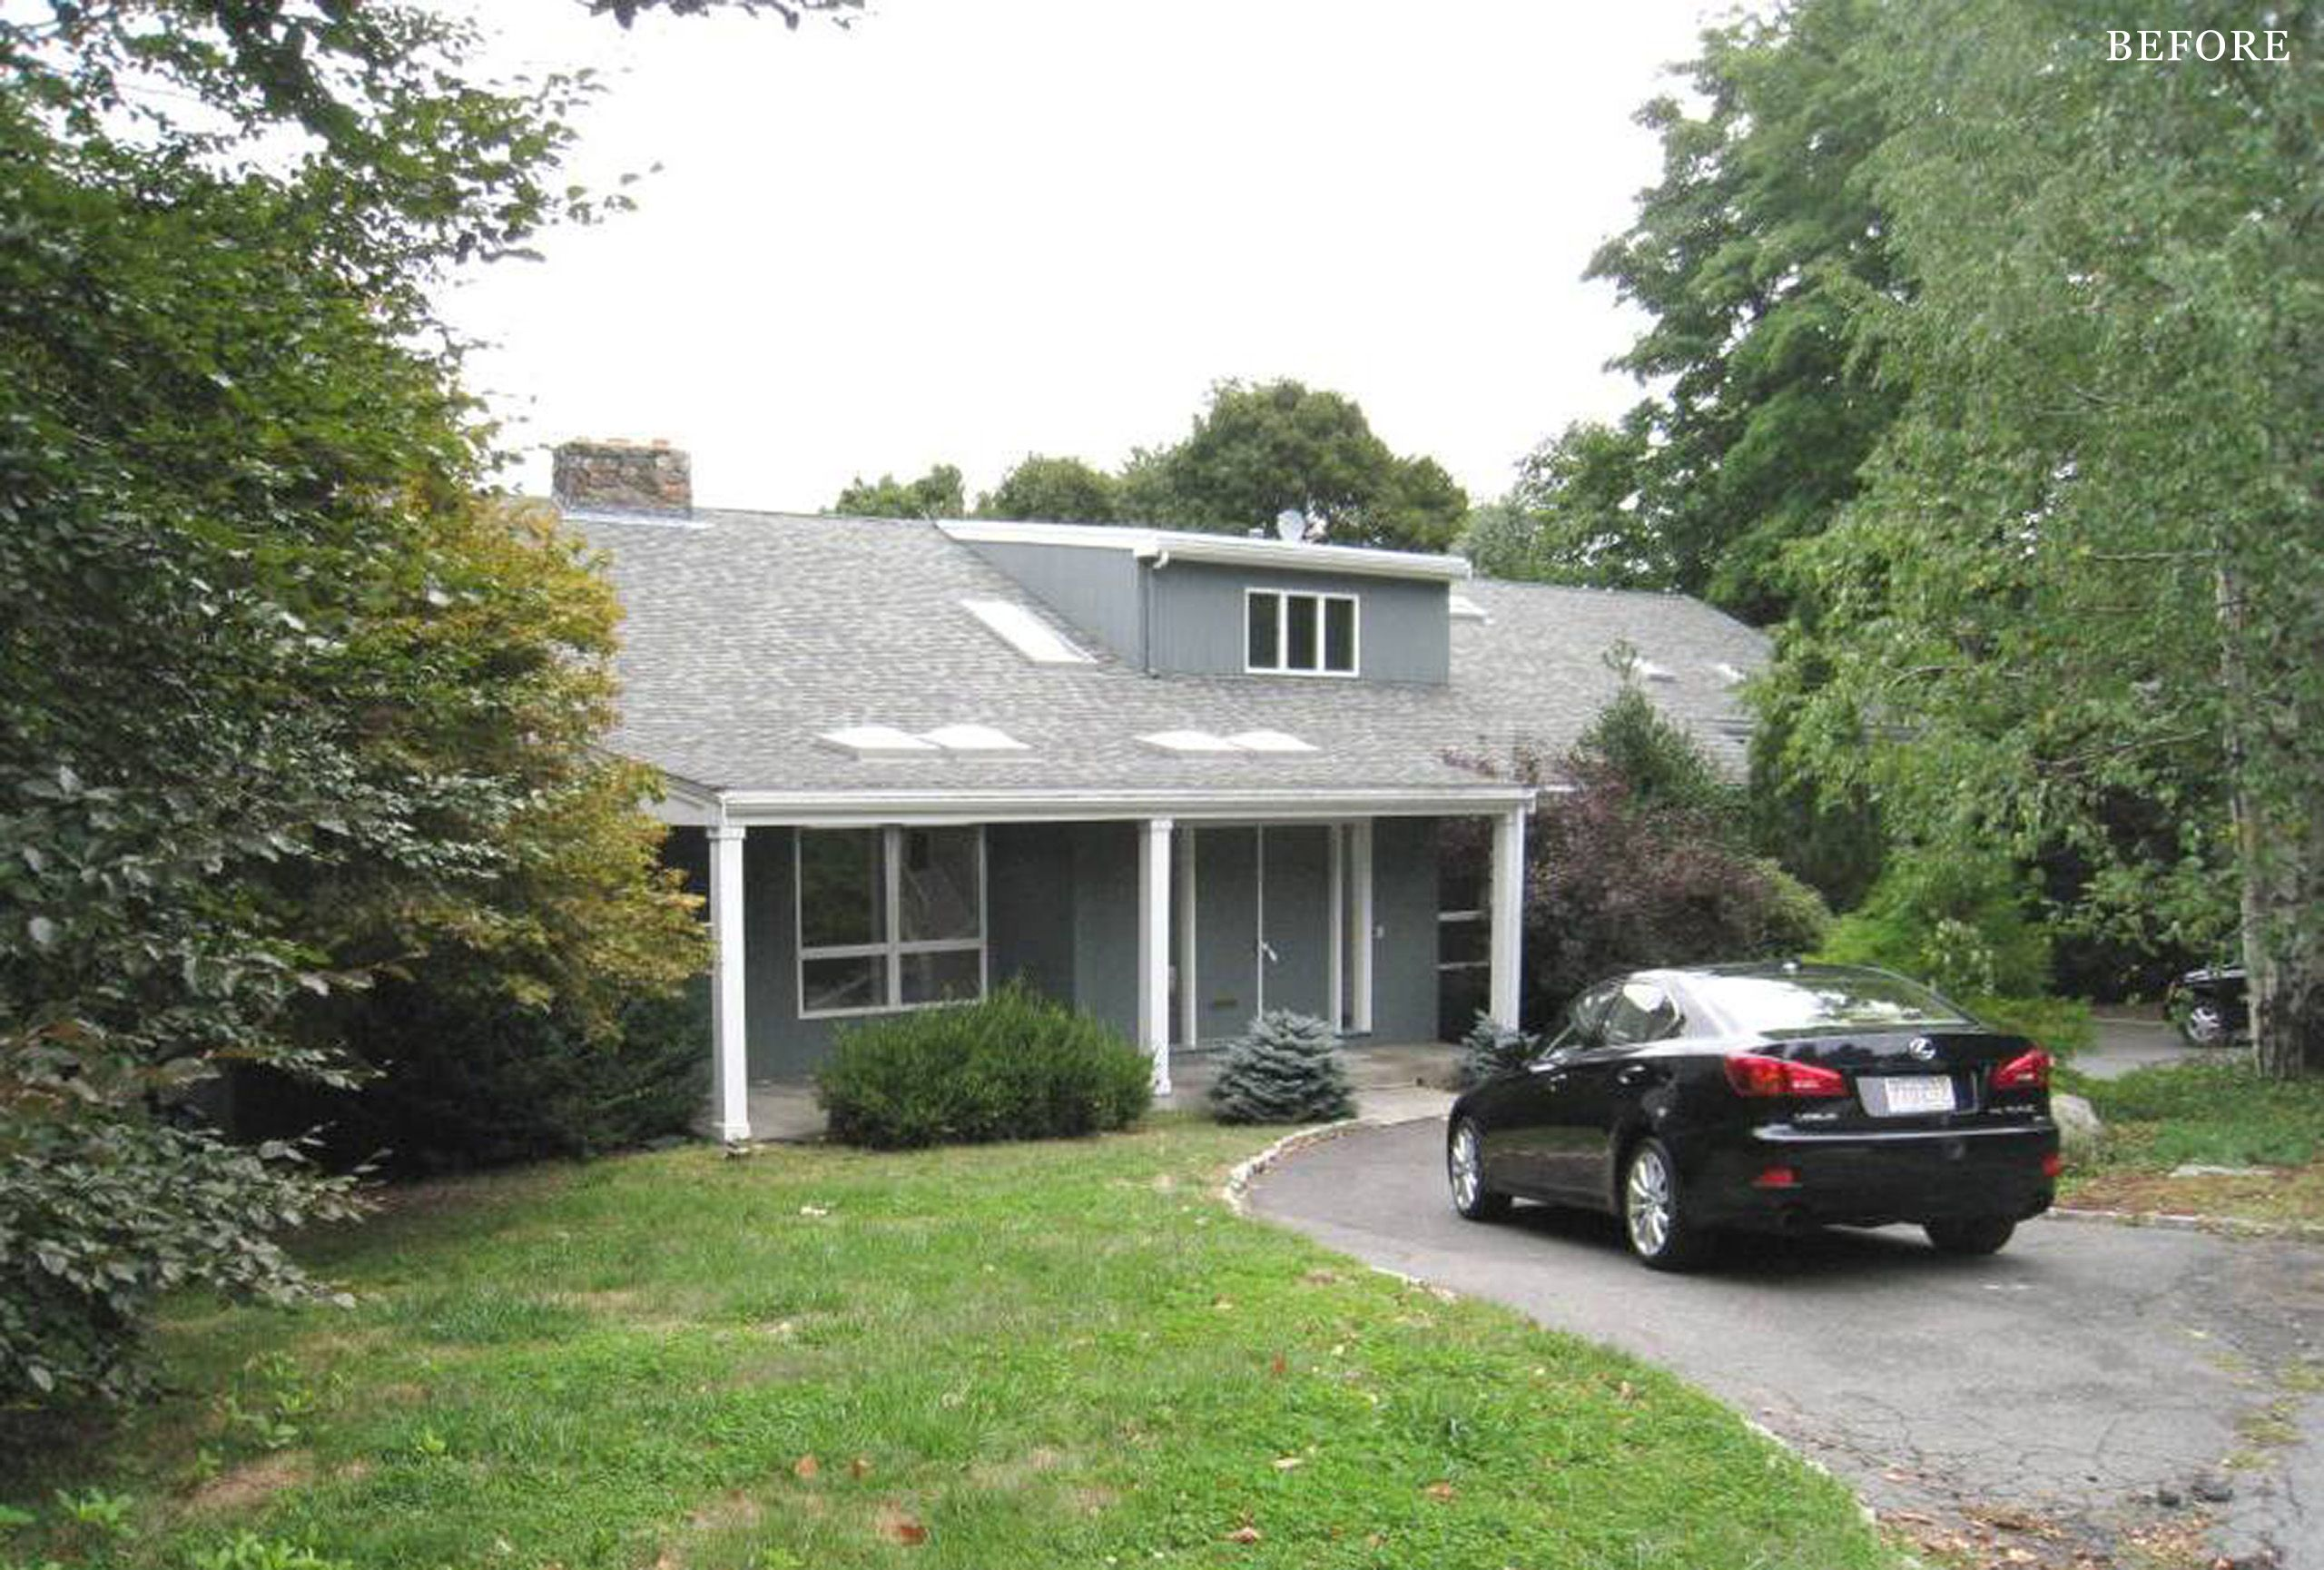 BrooklineResidence-BrooklineMA-Before.jpg